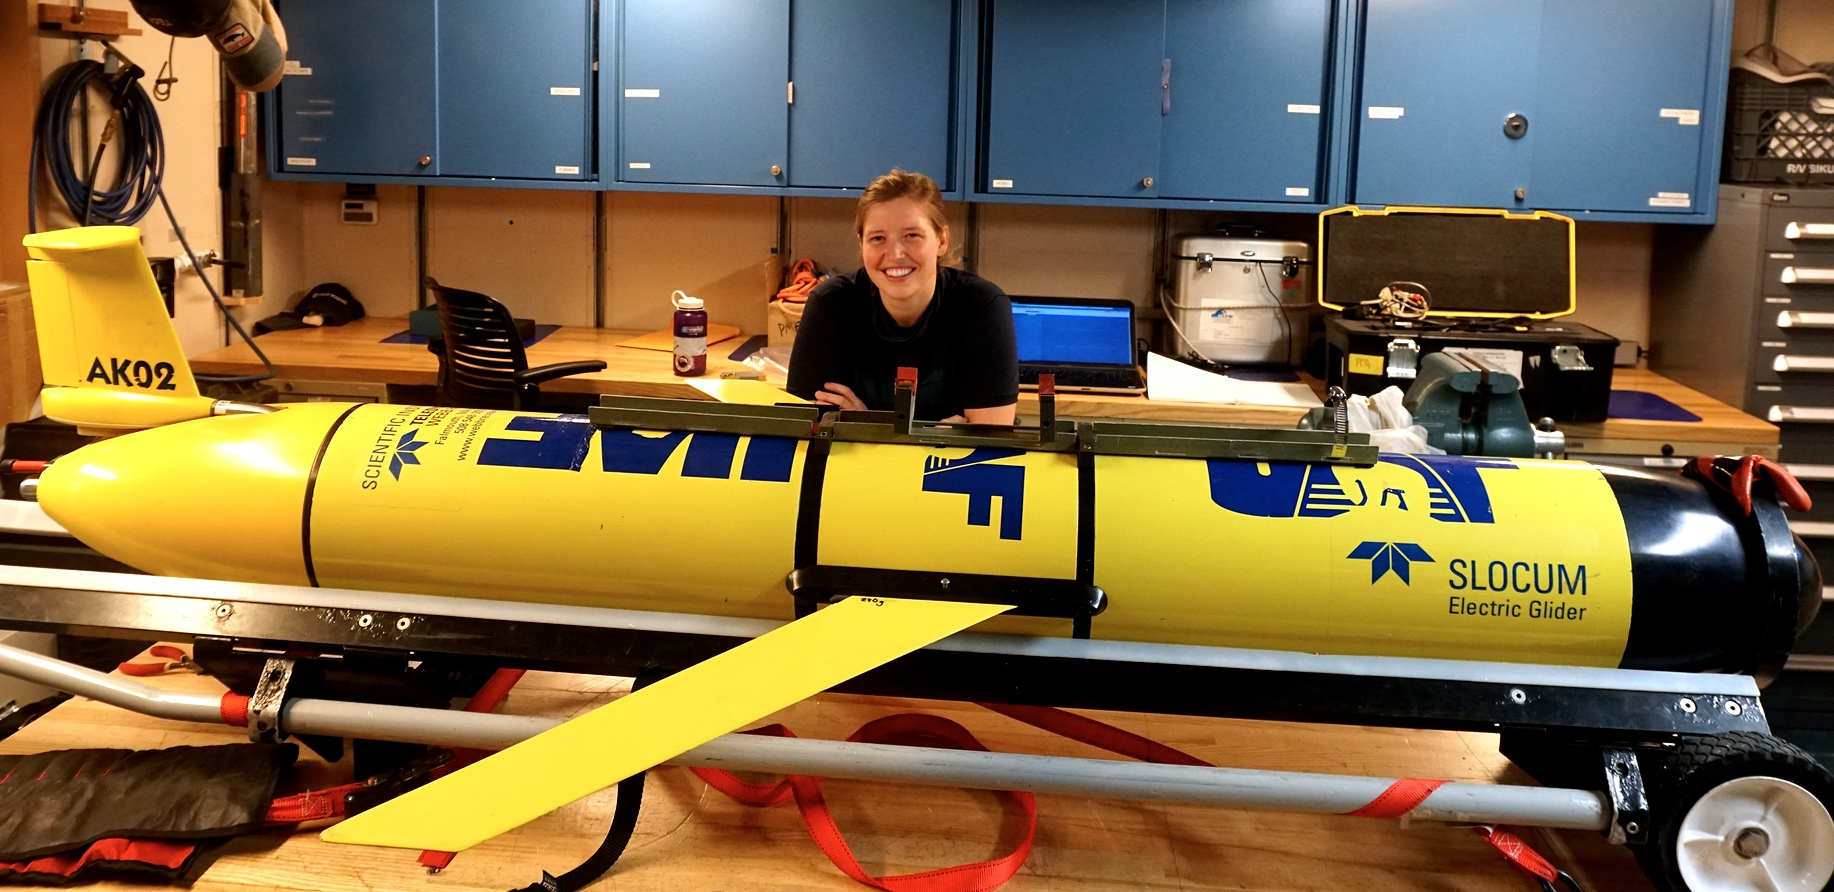 Brita Irving is a research scientist with the University of Alaska at Fairbanks. This is one of 6 underwater electric gliders that she oversees.